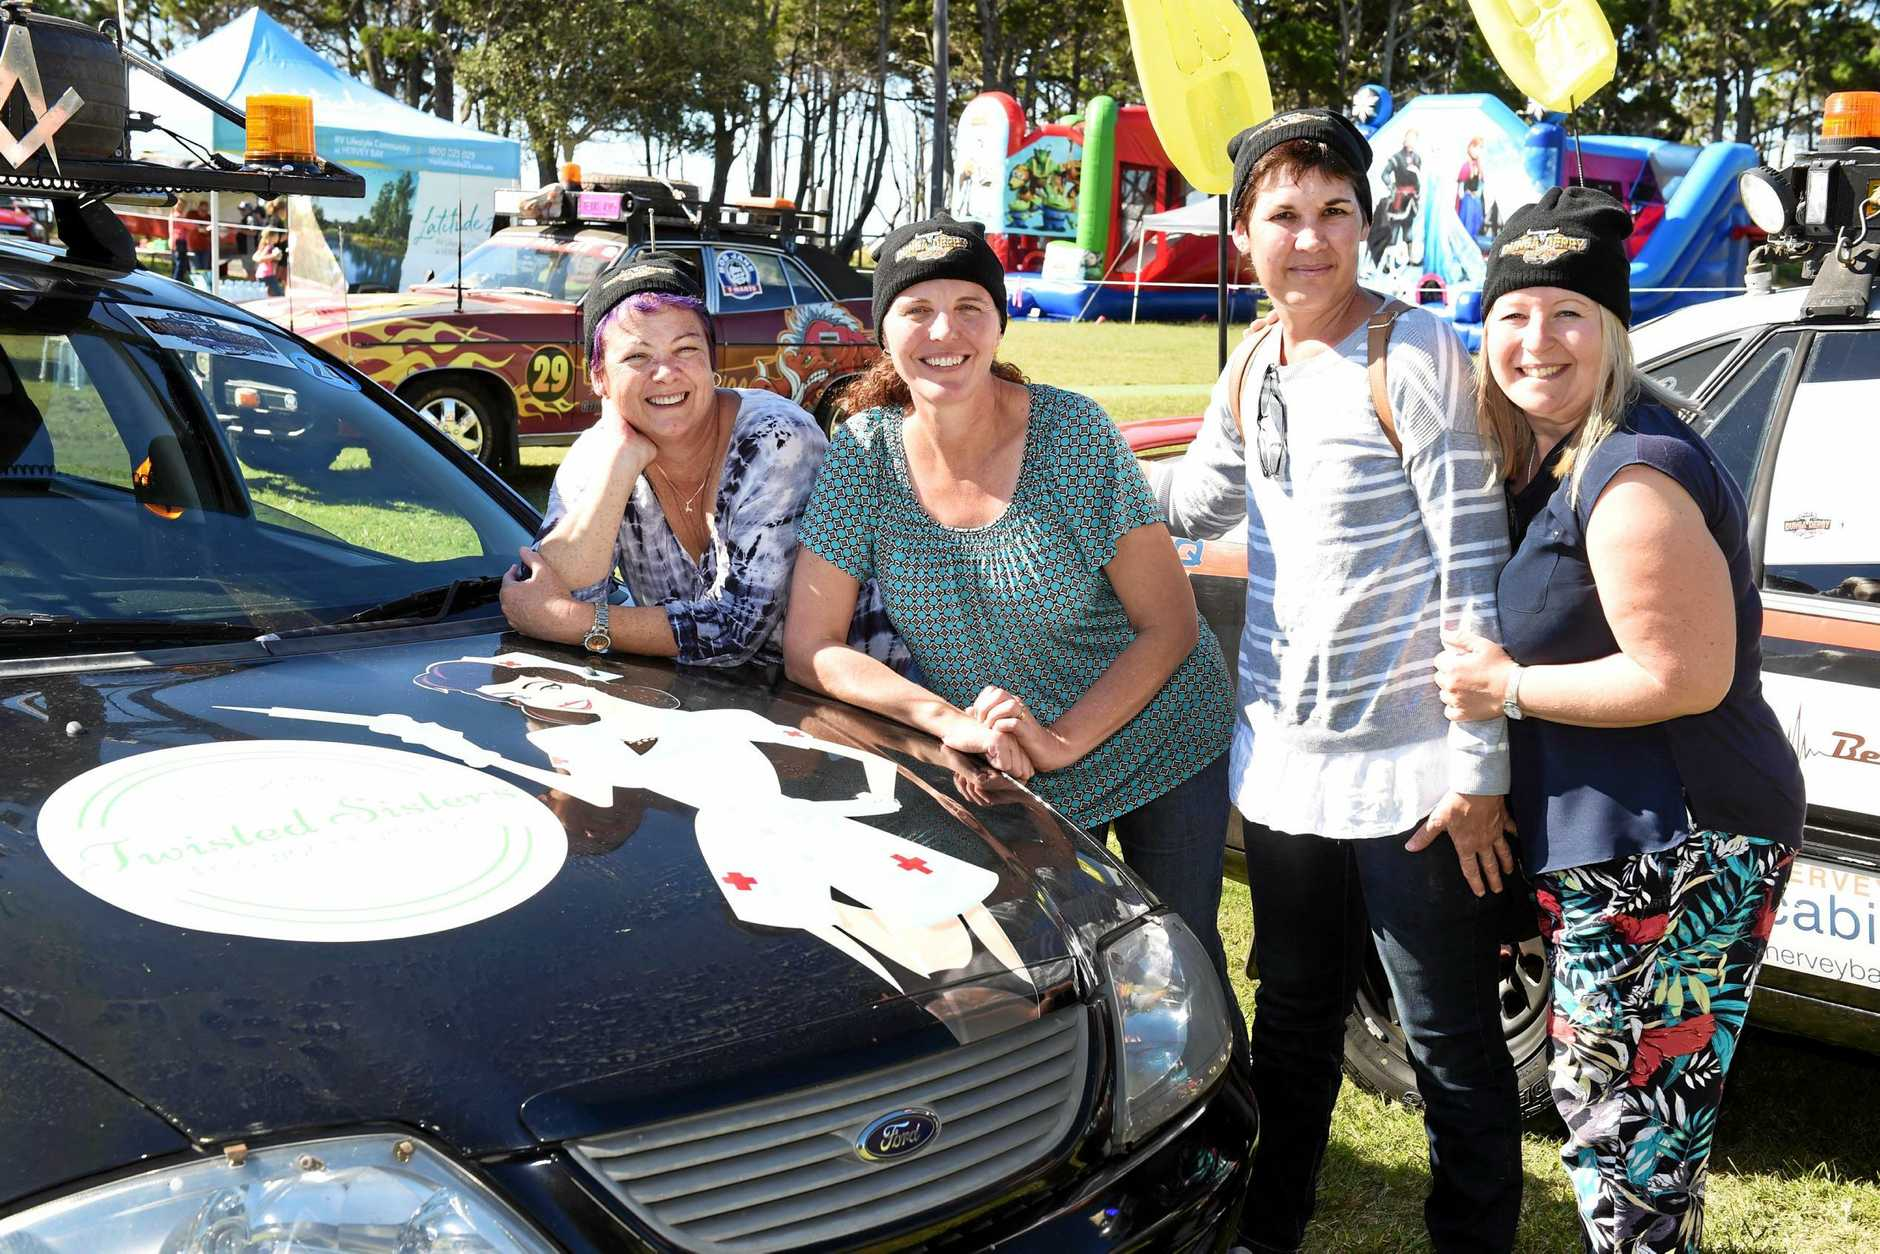 Dunga Derby car # 24 Twisted Sisters, Annemaree Nichol, Heather Crompton, Dianne Francis and Rachael Walker.